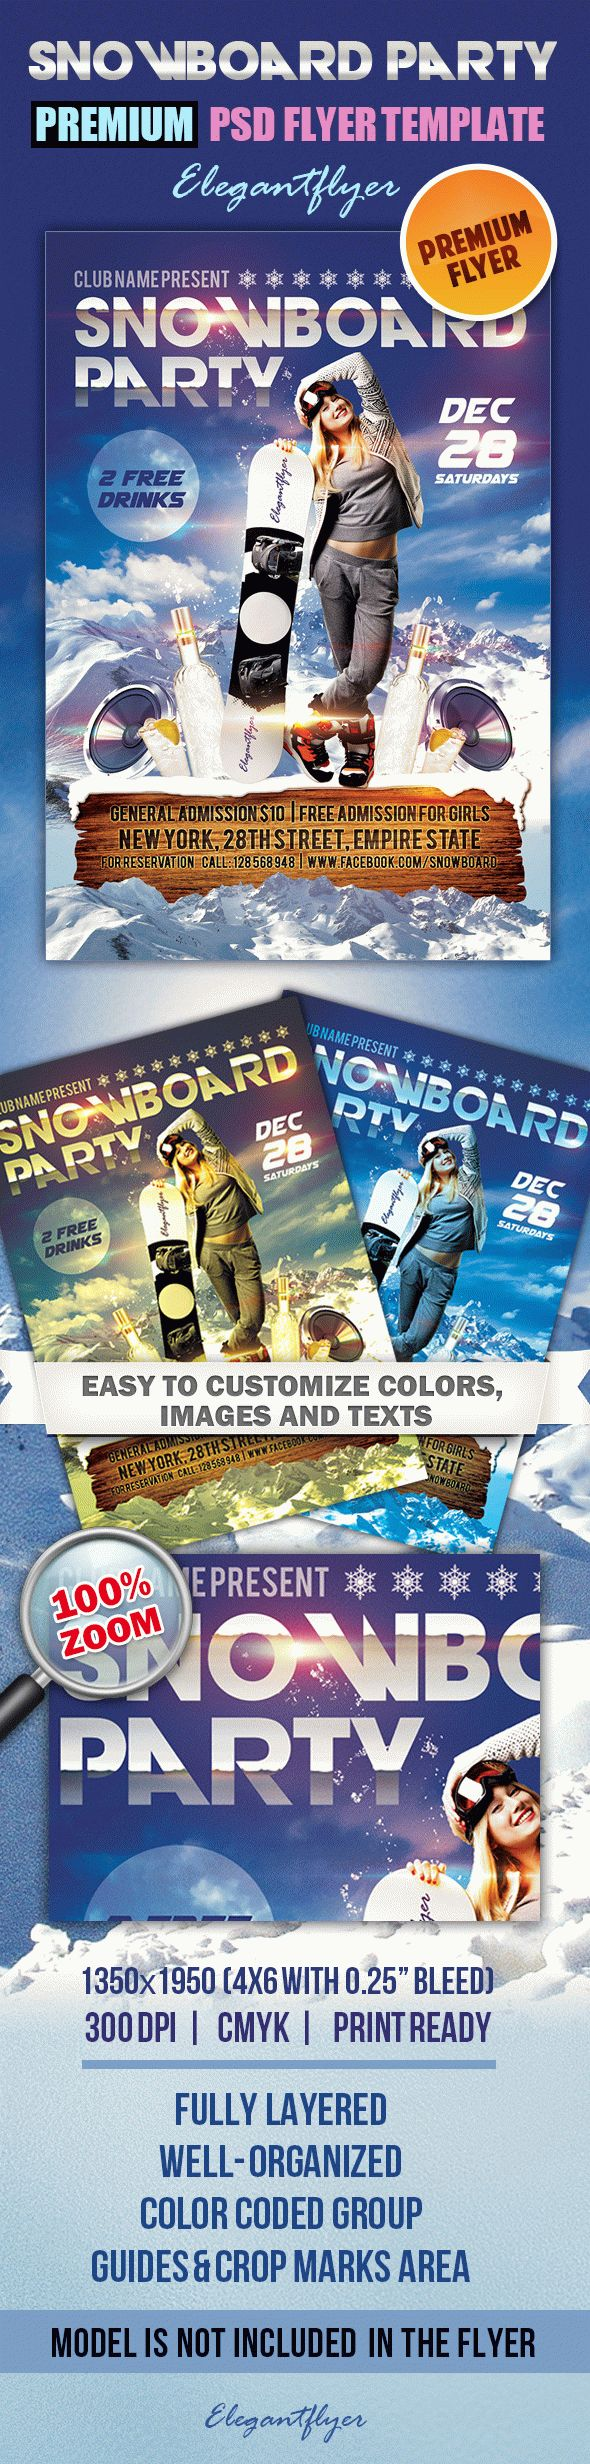 Snowboard Party – Premium Club flyer PSD Template